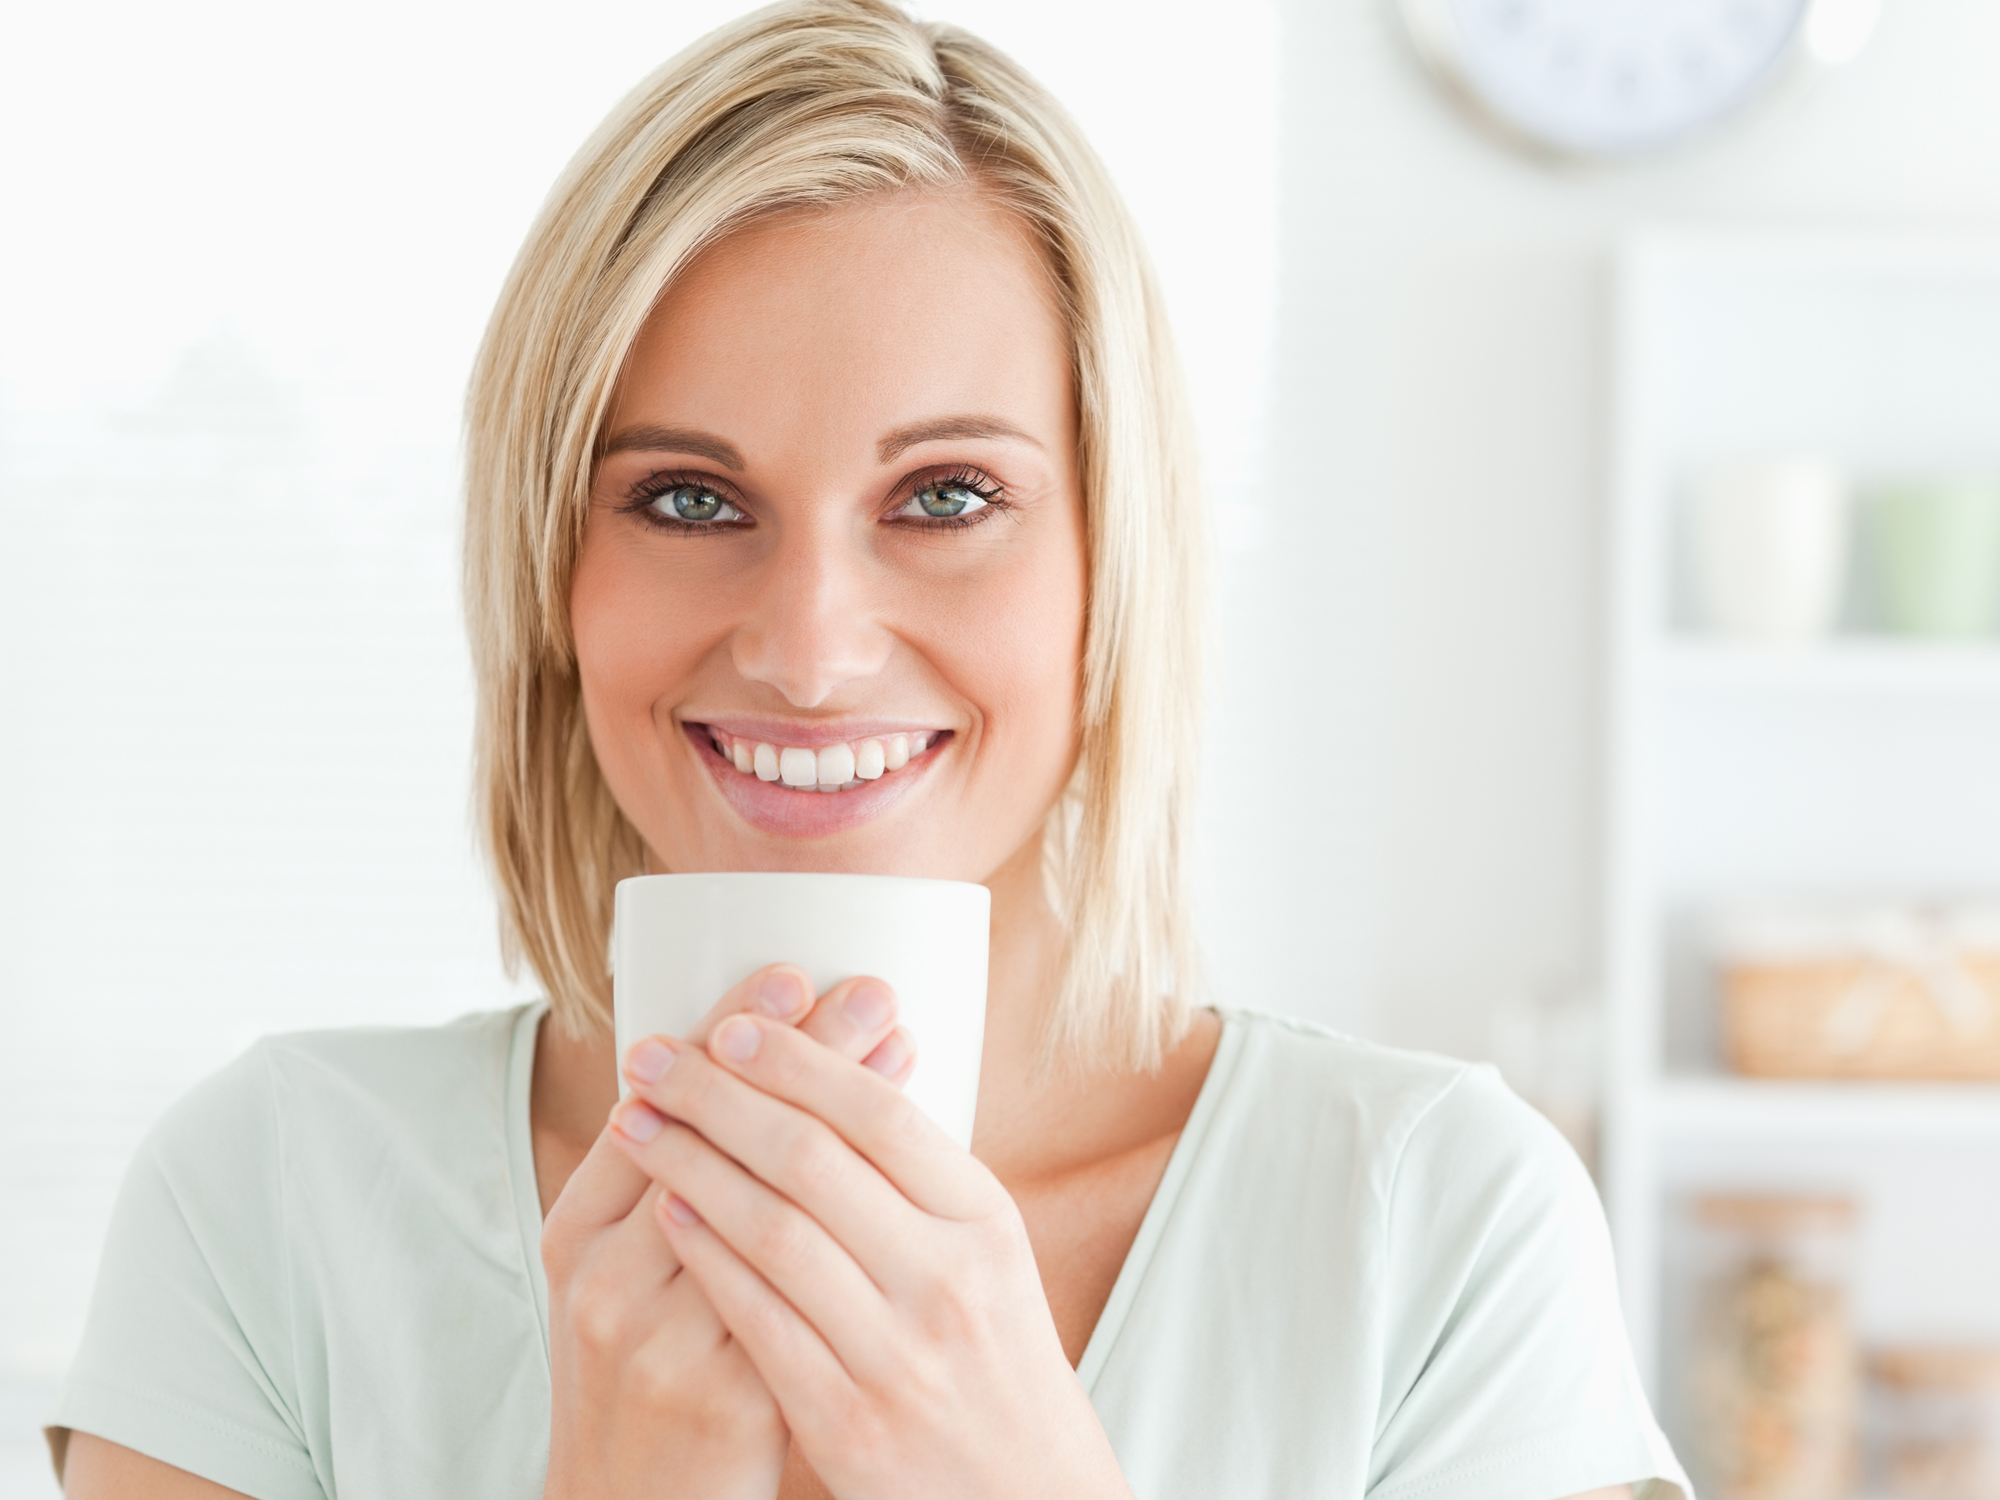 The tea that keeps you young, fit and energetic